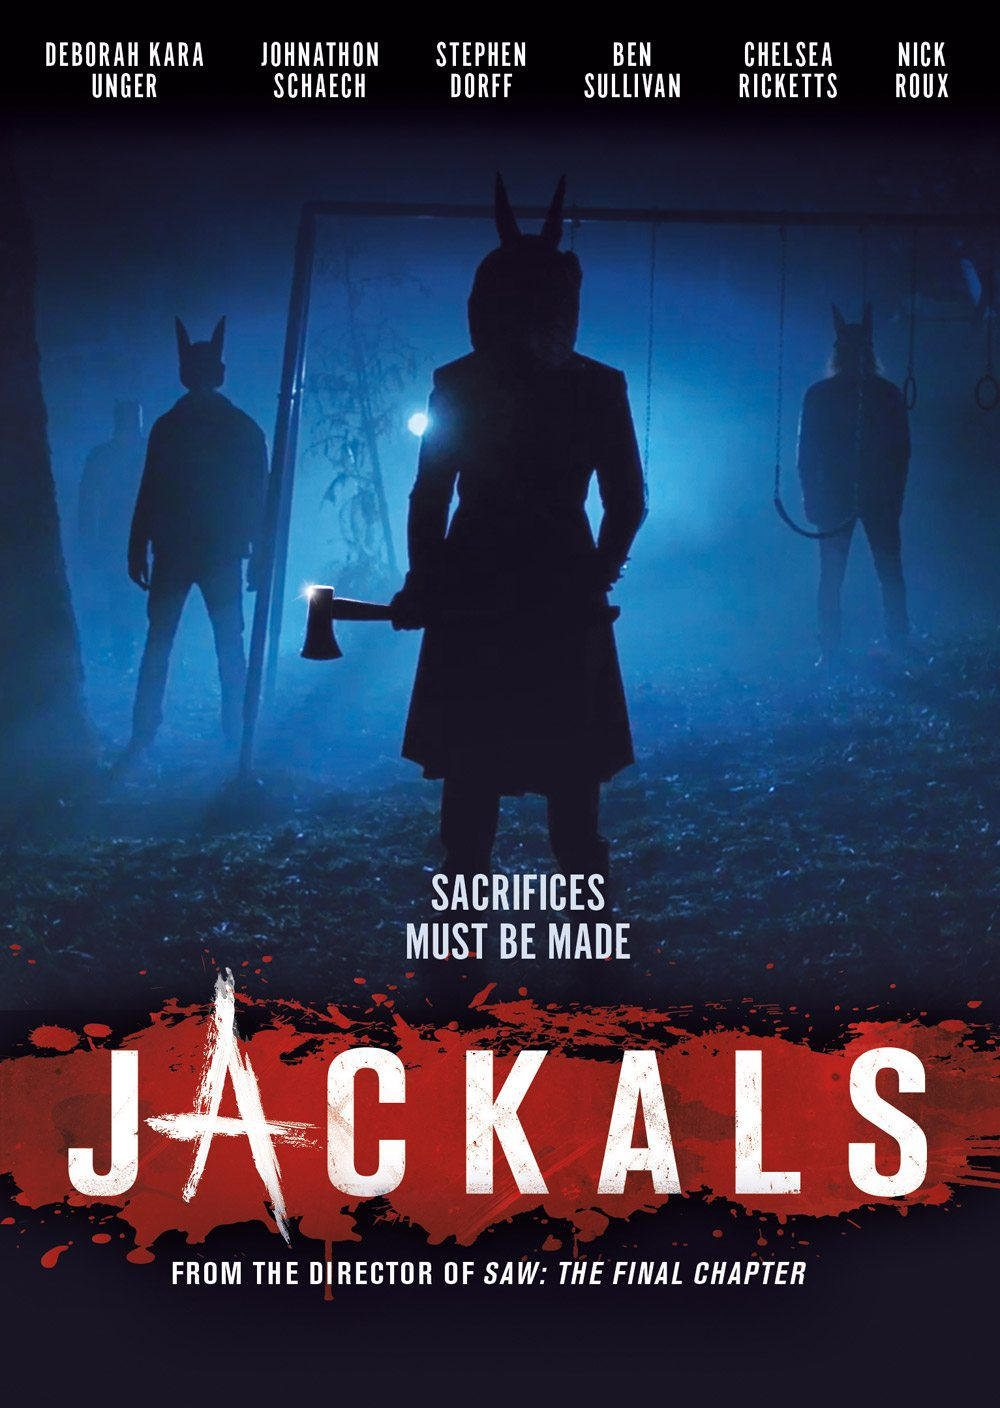 Check out the First Trailer for 'Jackals!'